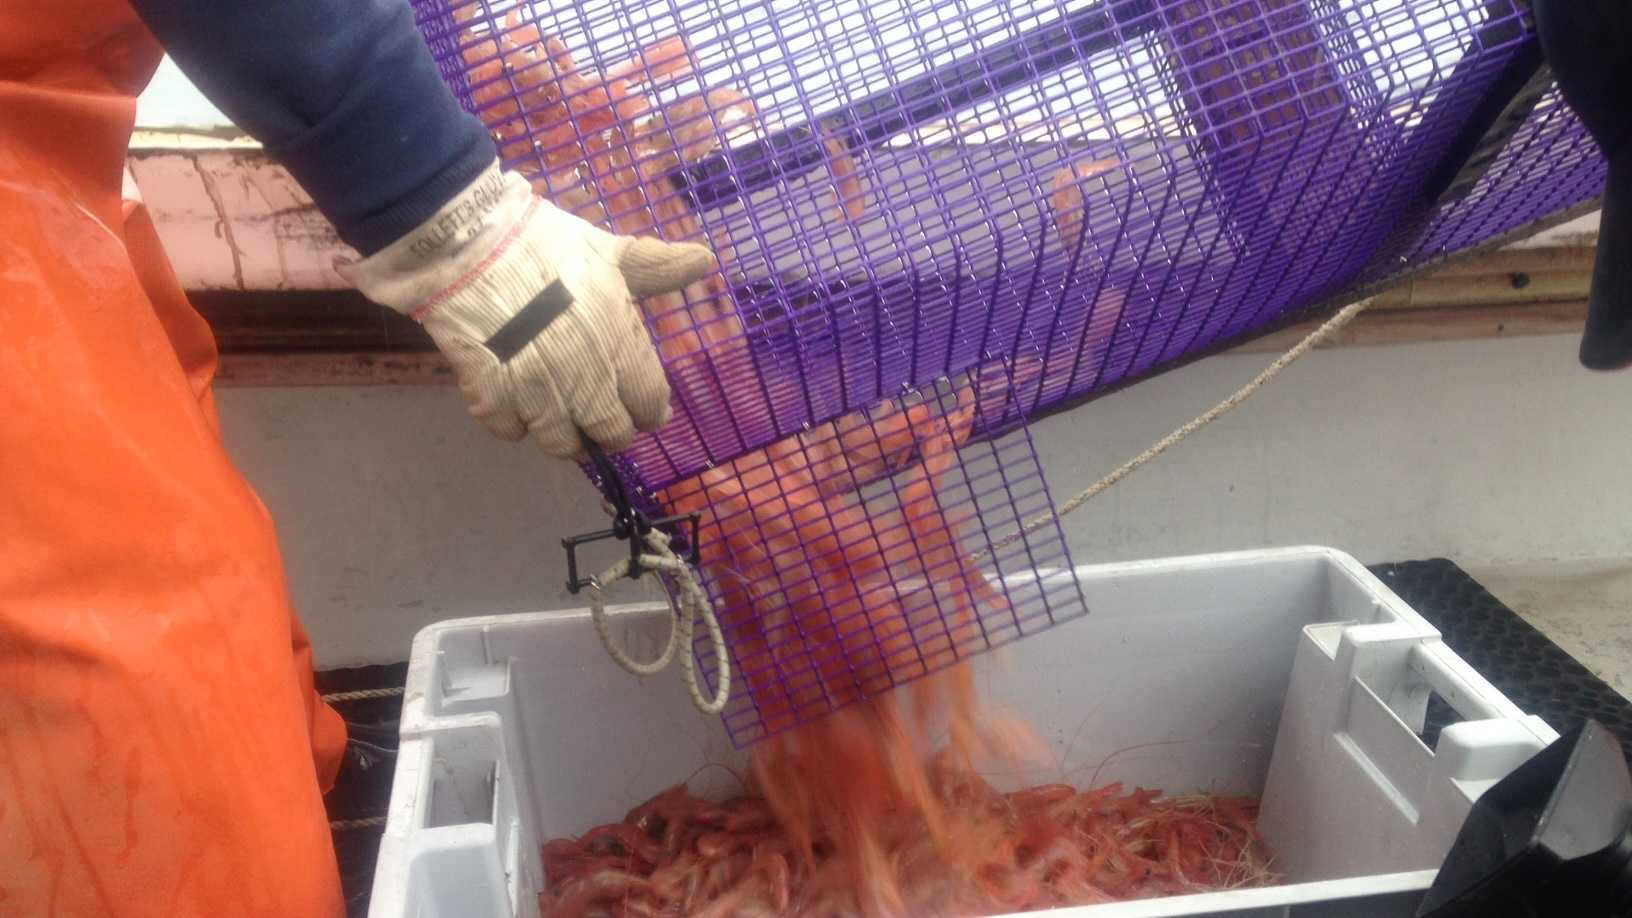 Gamage estimates he brought in 60 or 70 pounds of shrimp Tuesday, but he says that's not an indication that there are plenty of shrimp in the Gulf of Maine.